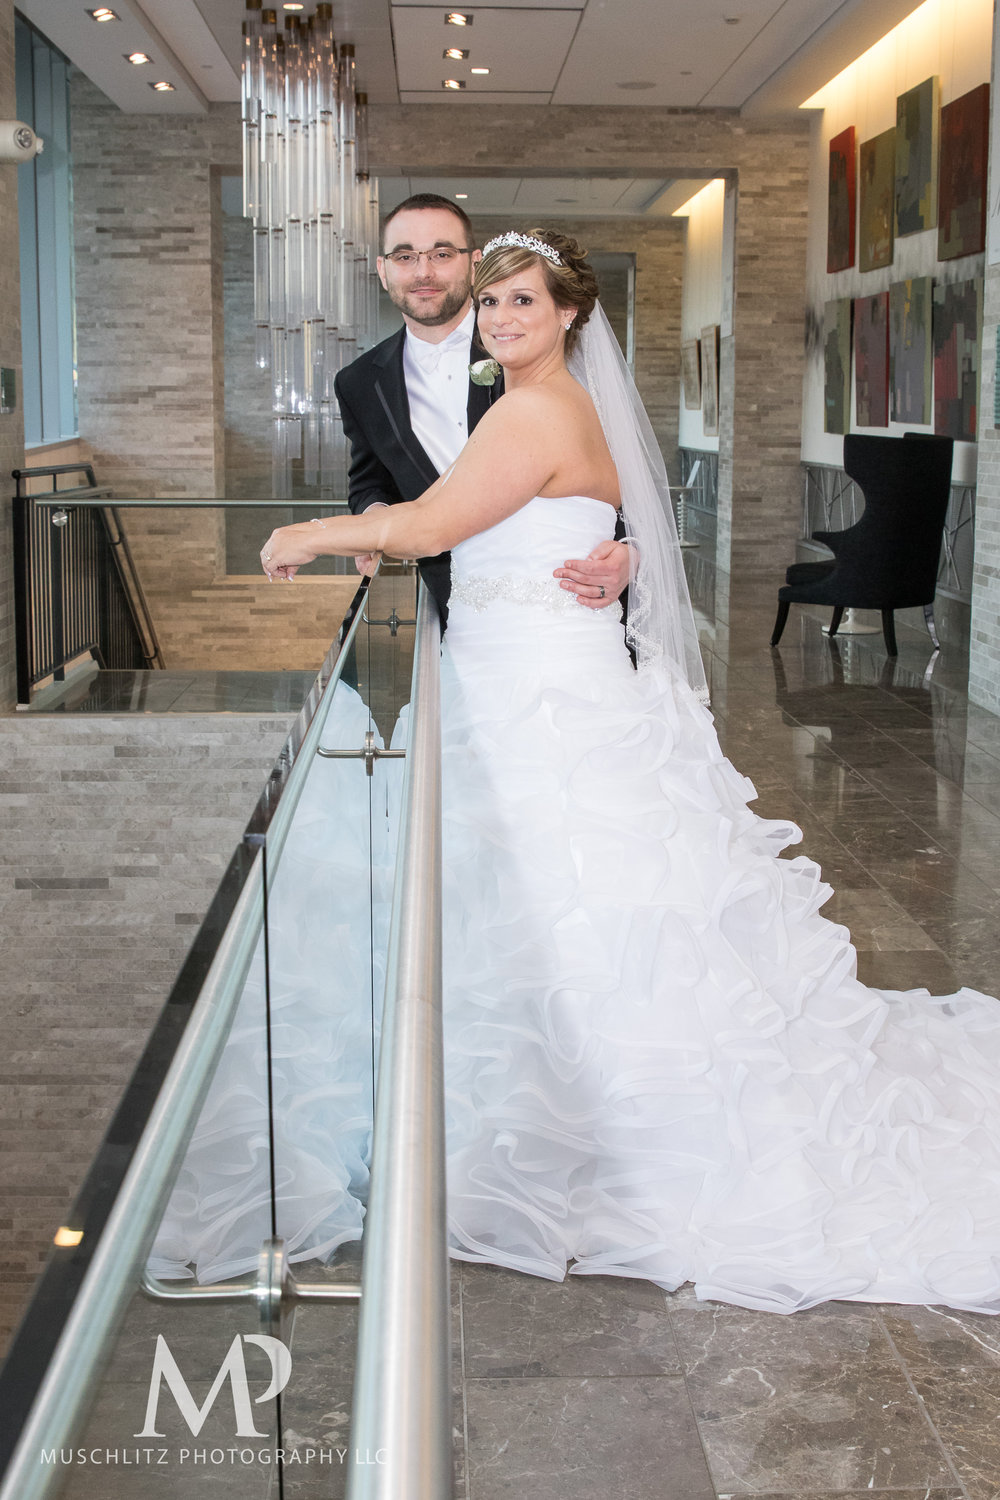 the hilton-columbus-wedding-portraits-downtown-columbus-ohio-muschlitz-photography-006.JPG